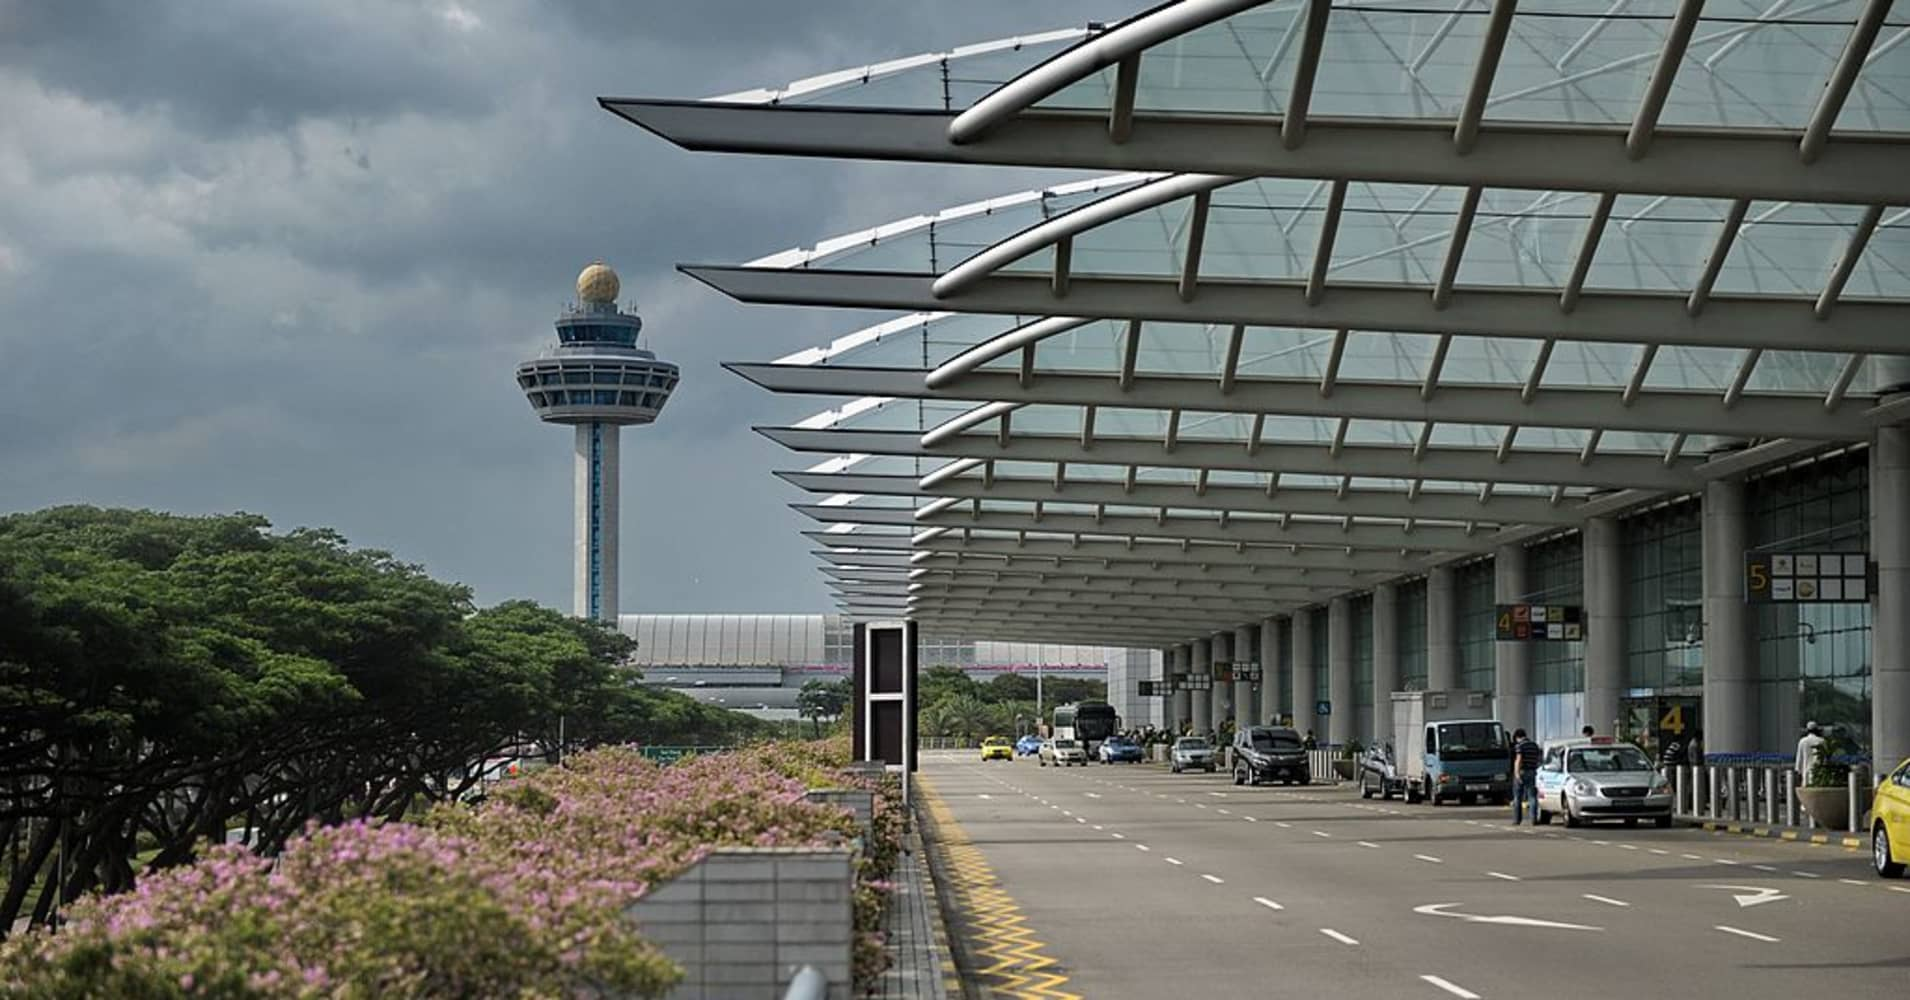 Singapore beats Hong Kong to claim title of 'World's Best Airport'